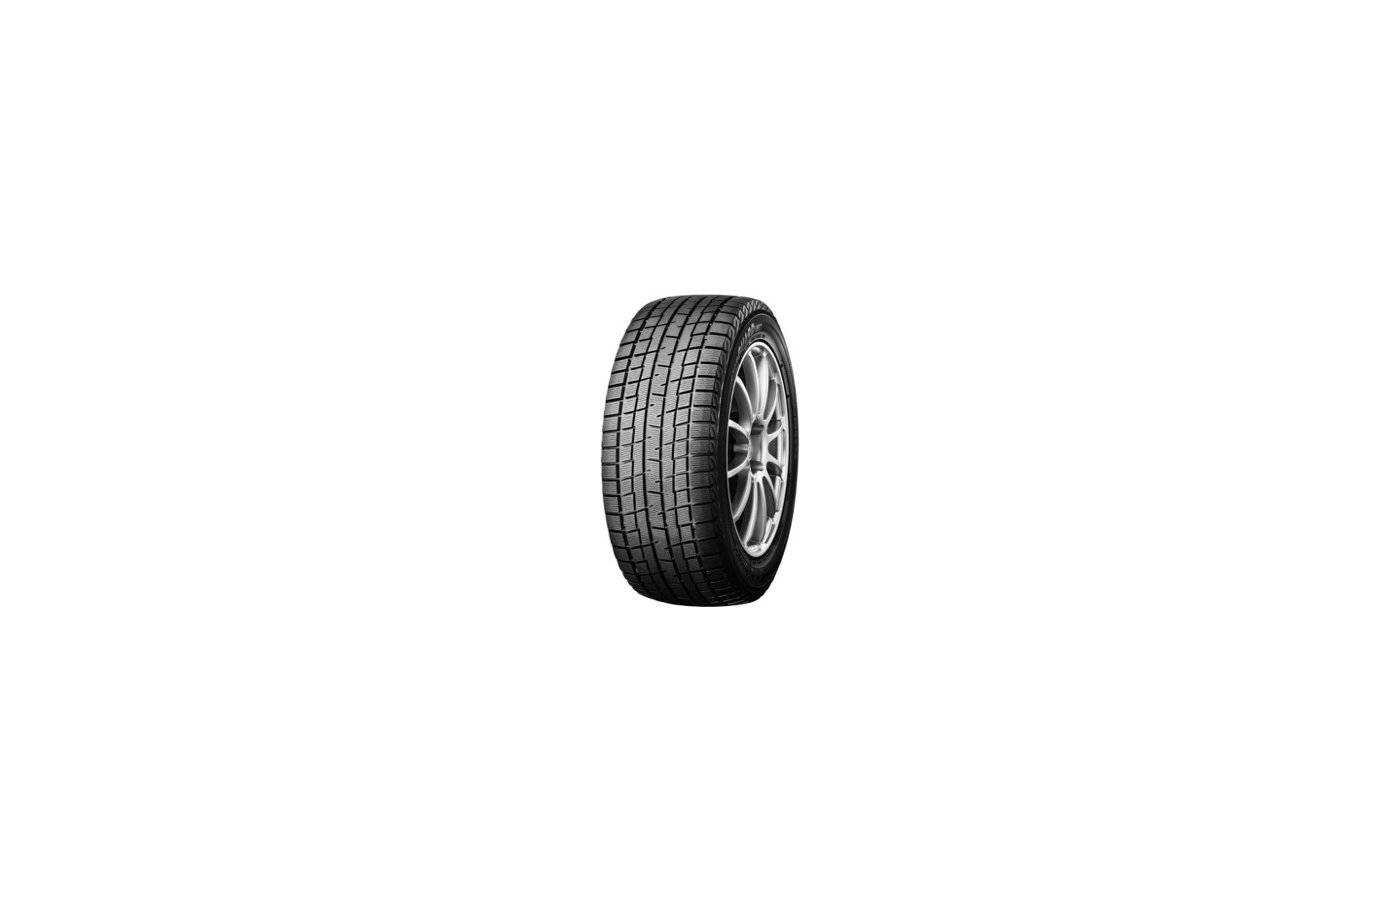 Шина Yokohama Ice Guard IG50 Plus 225/60 R17 TL 99Q